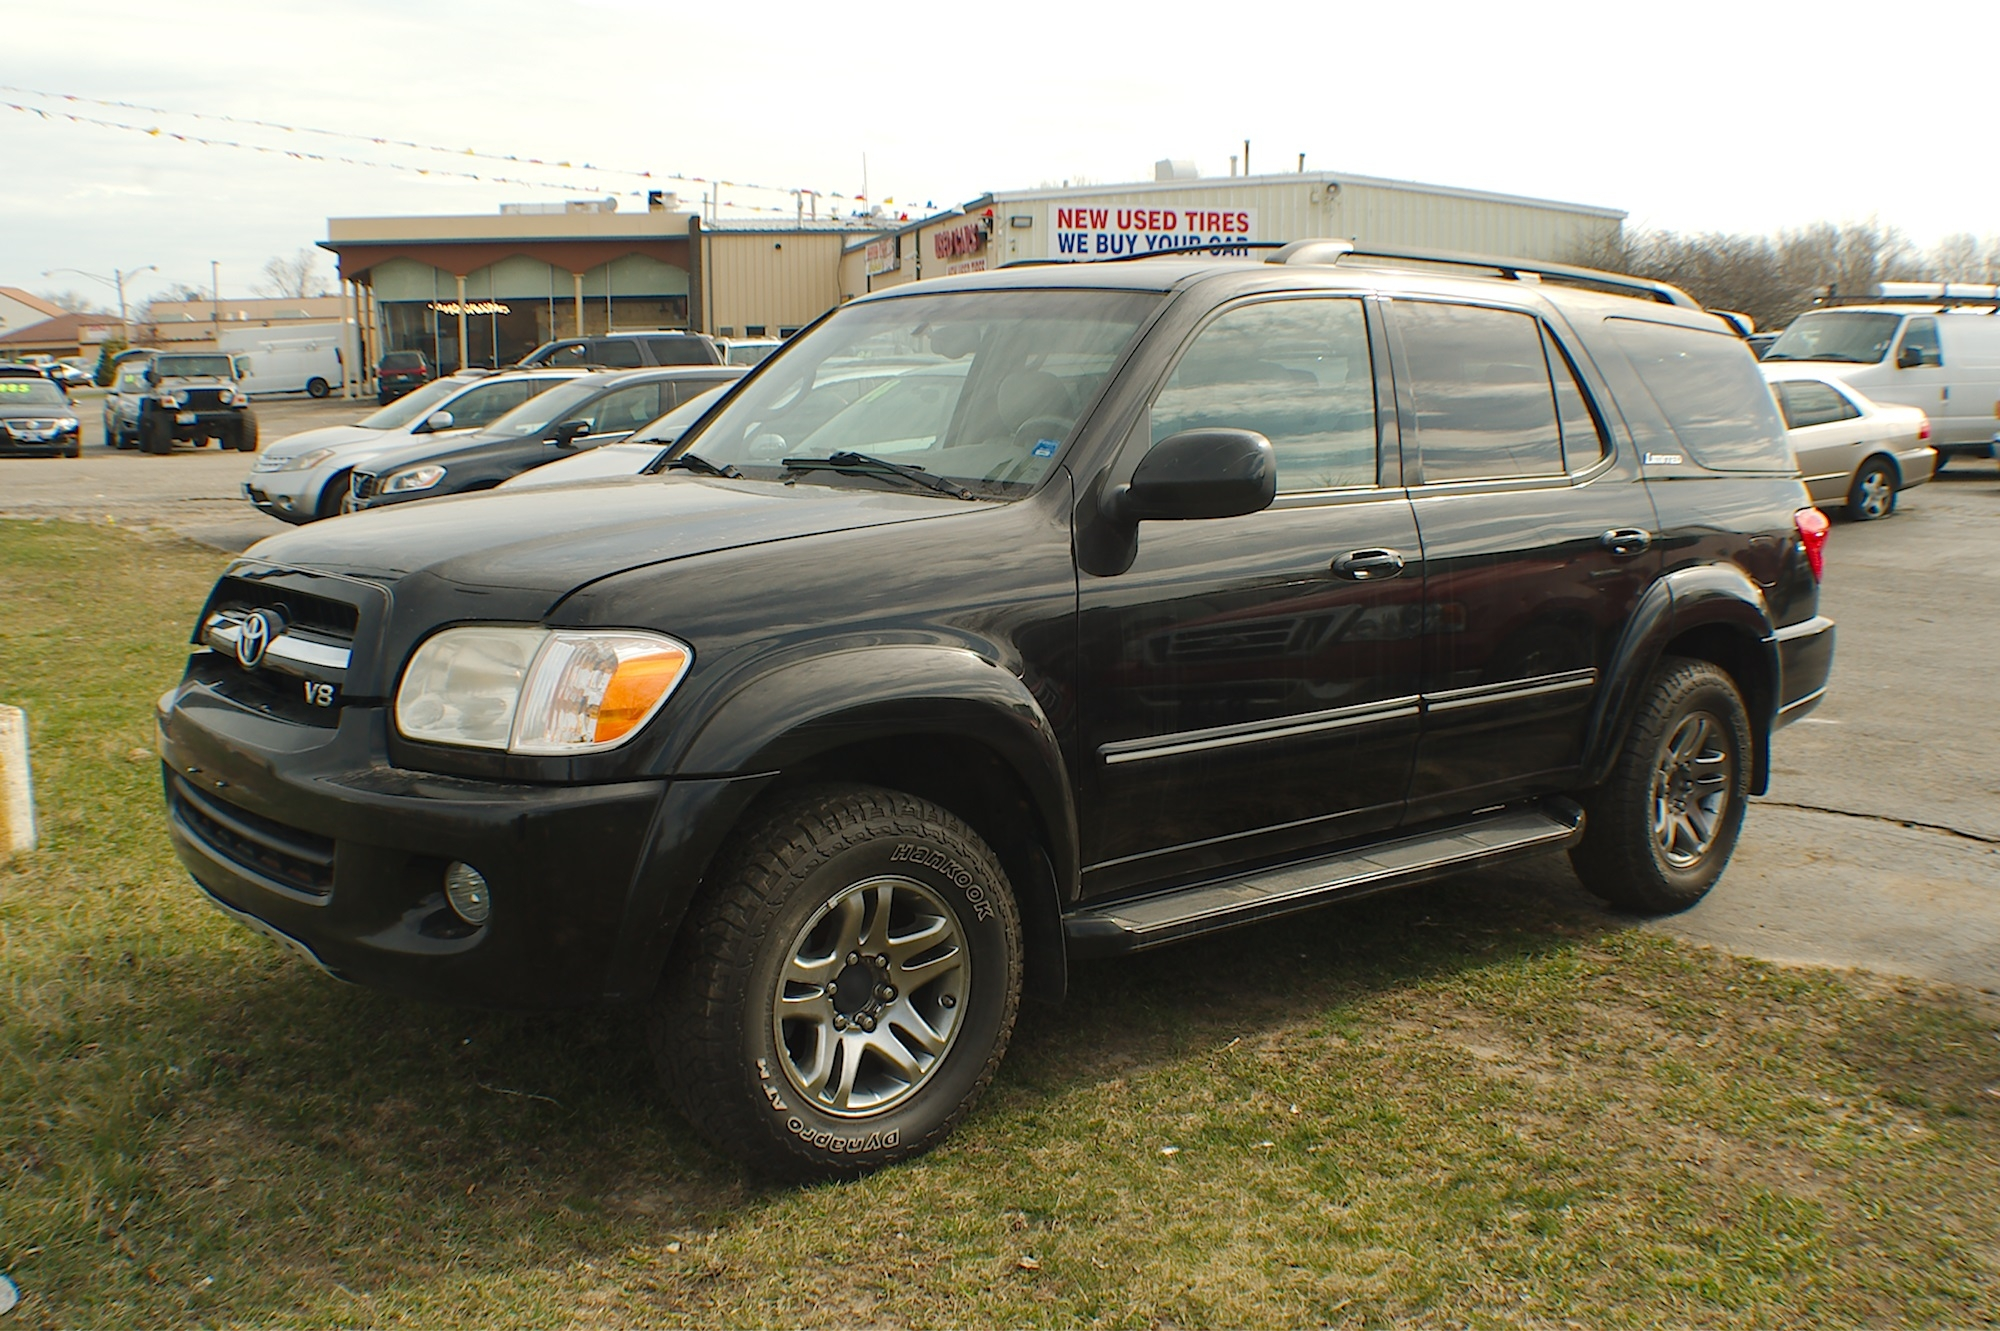 2005 Toyota Sequoia 4x4 Black Used SUV Sale Antioch Zion Waukegan Lake County Illinois